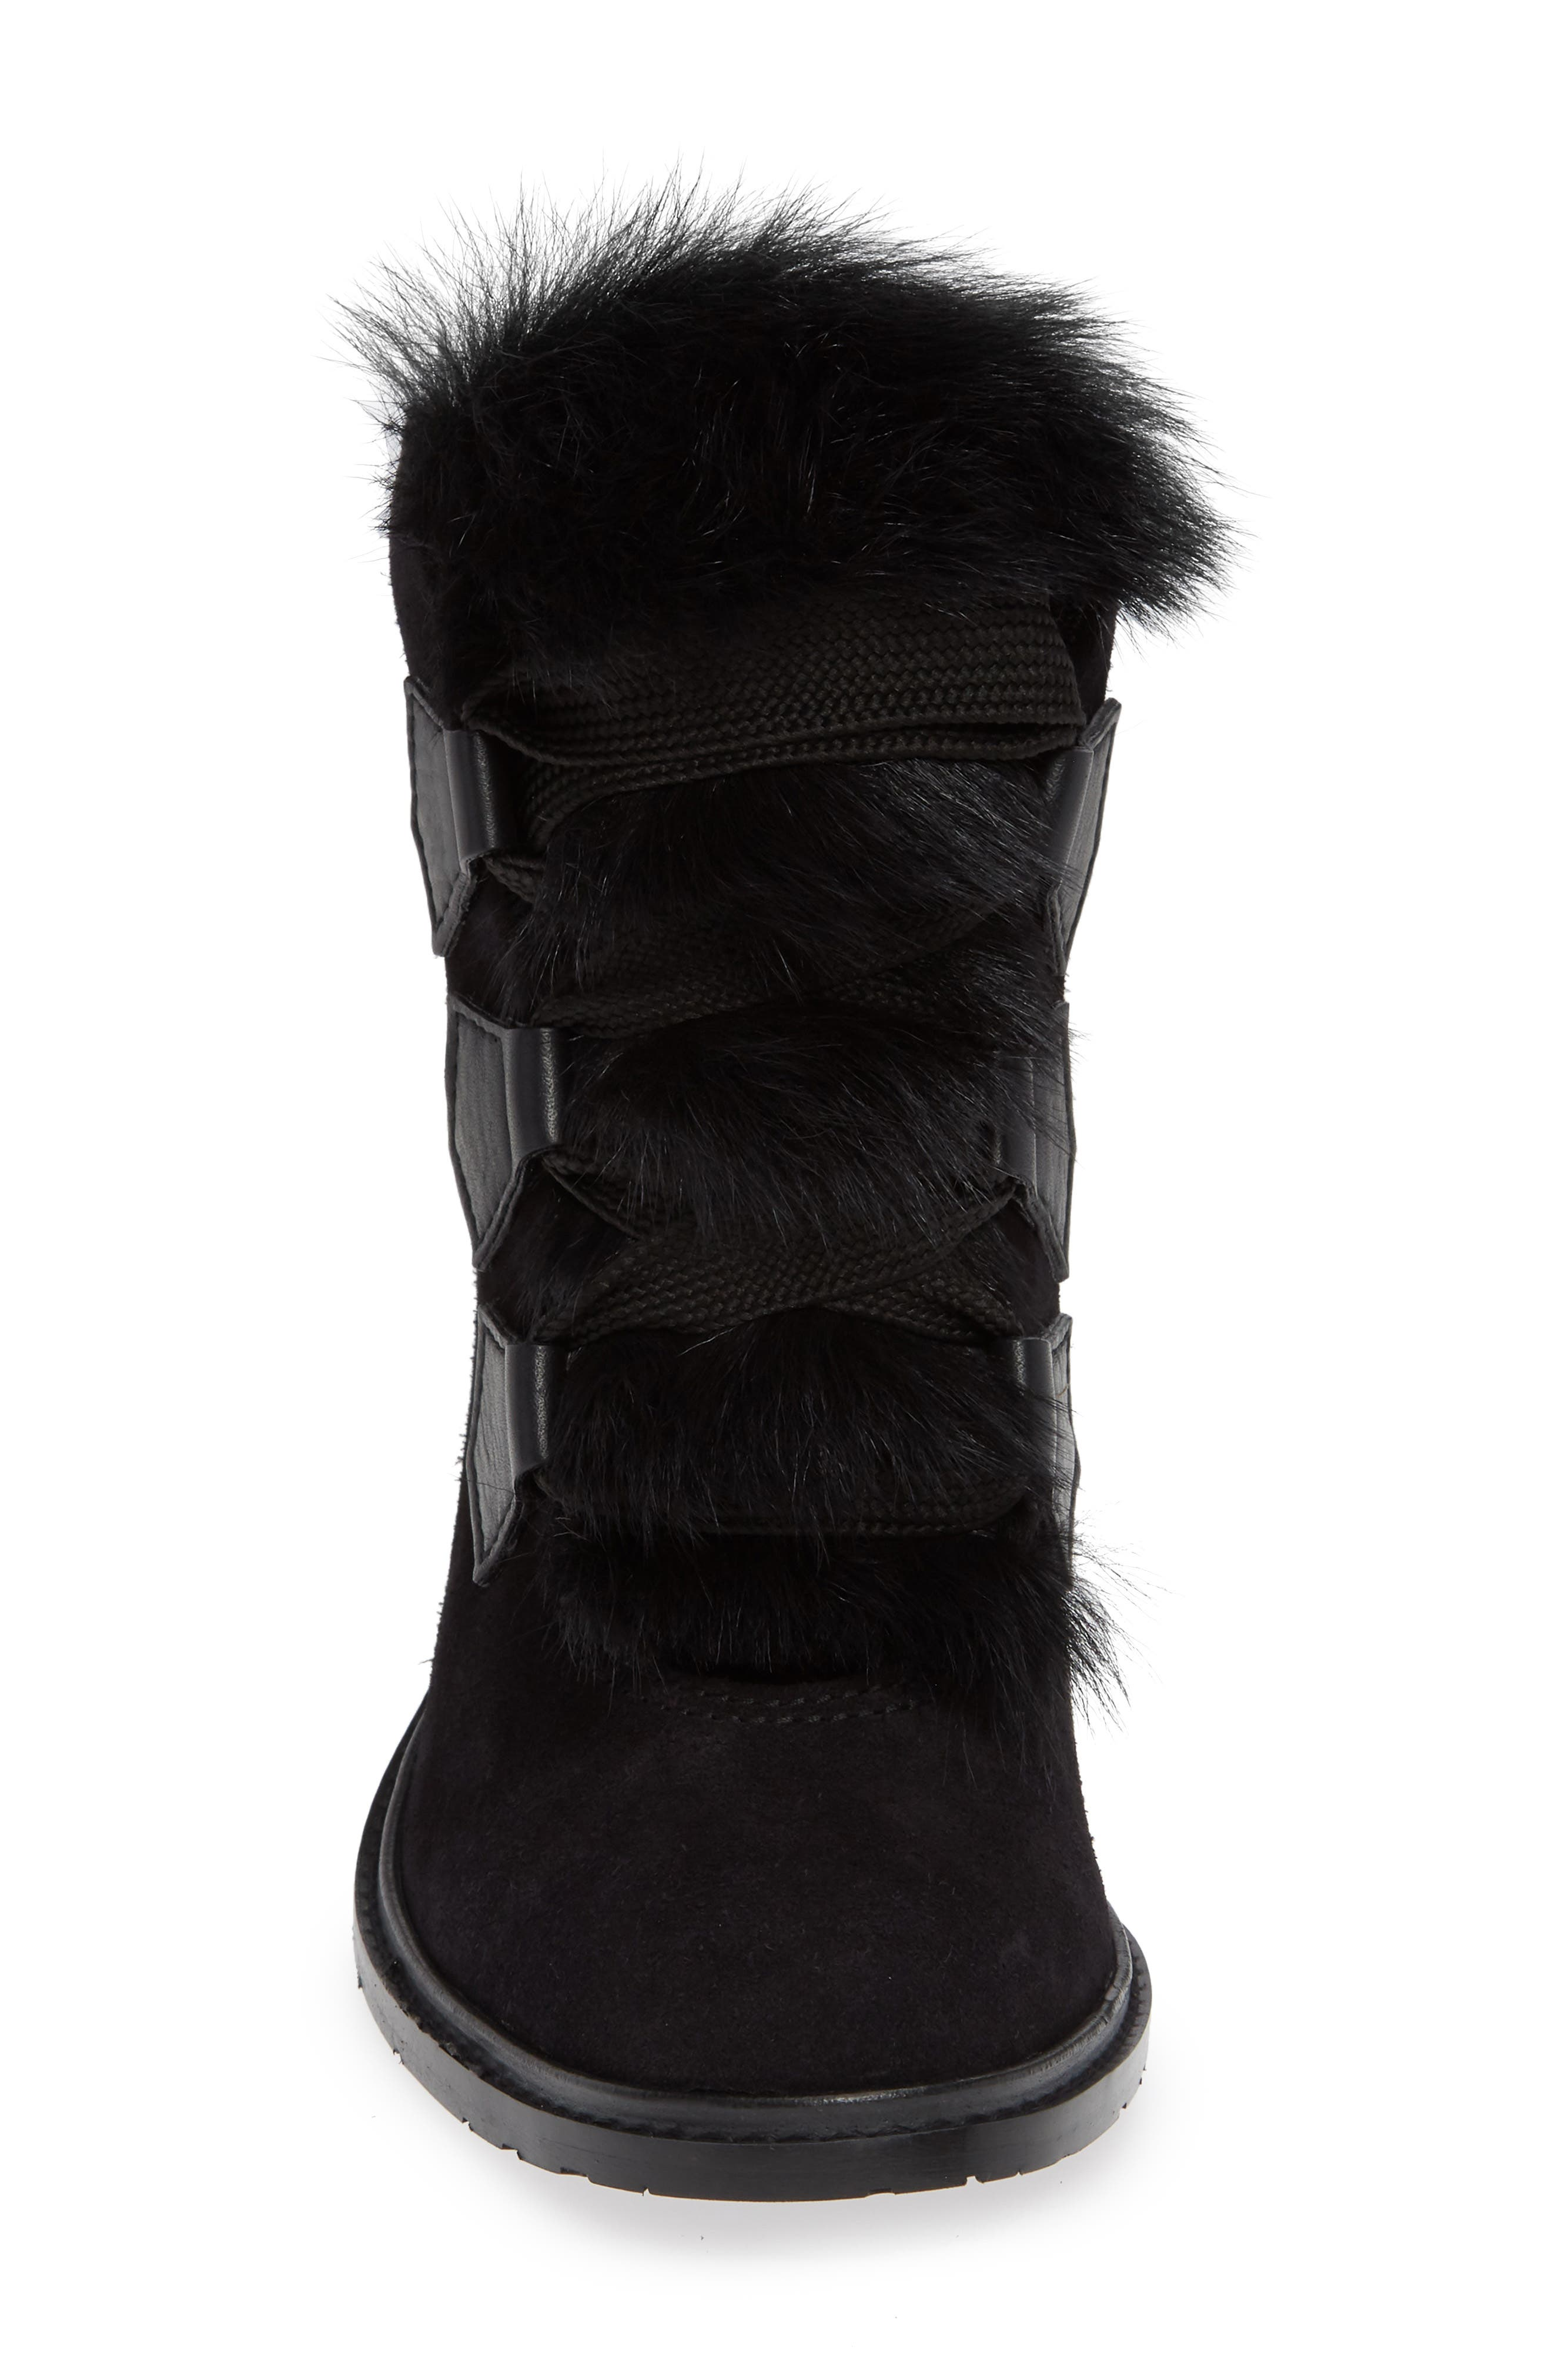 Wilmette Bootie with Genuine Shearling Trim,                             Alternate thumbnail 4, color,                             BLACK CHURRA